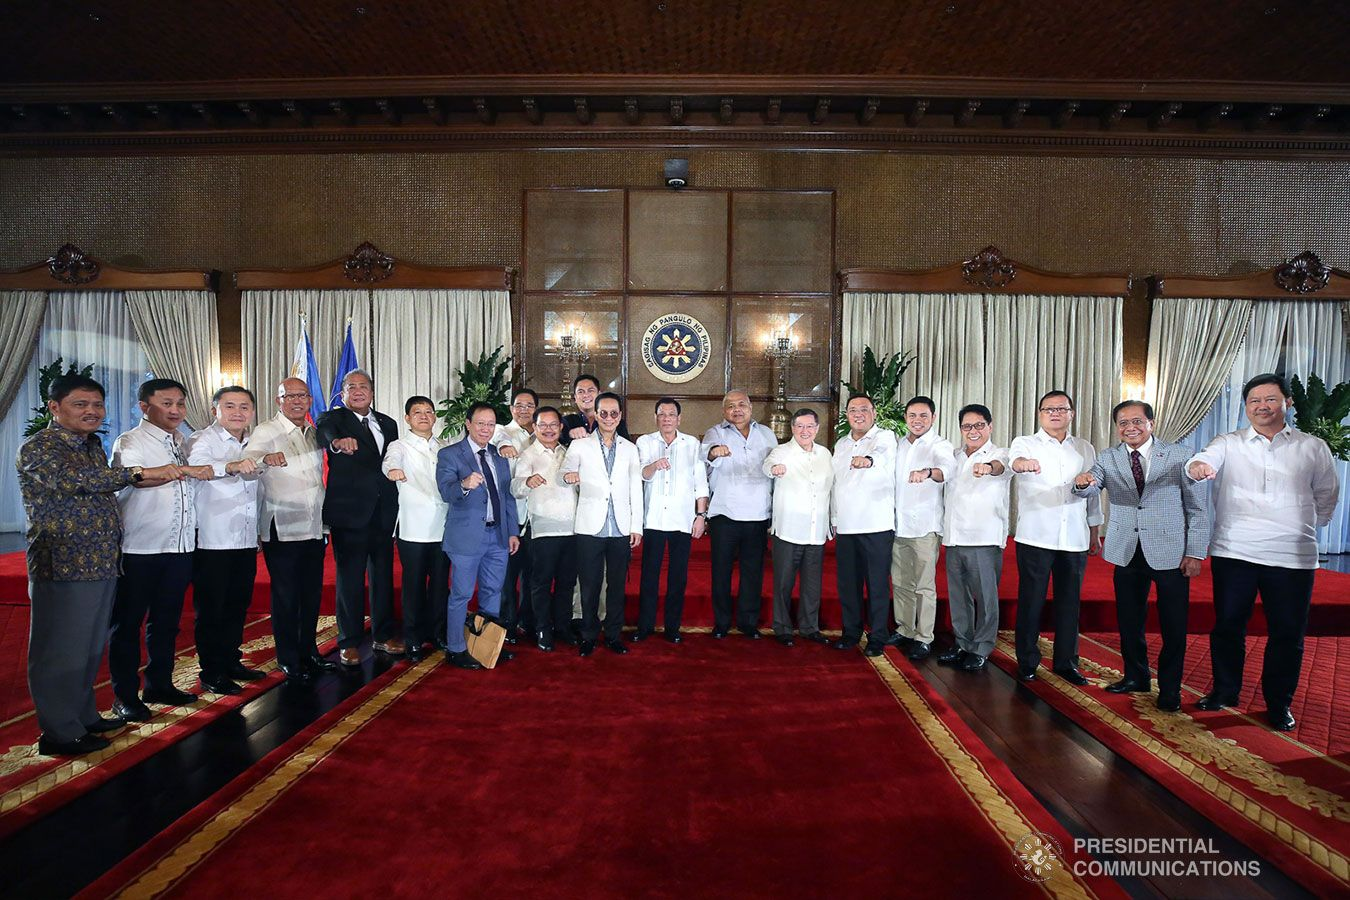 President Rodrigo Roa Duterte Strikes His Signature Pose With The Members Of His Cabinet Following The Dialogue With Chief Presid Presidential Poses Presidents